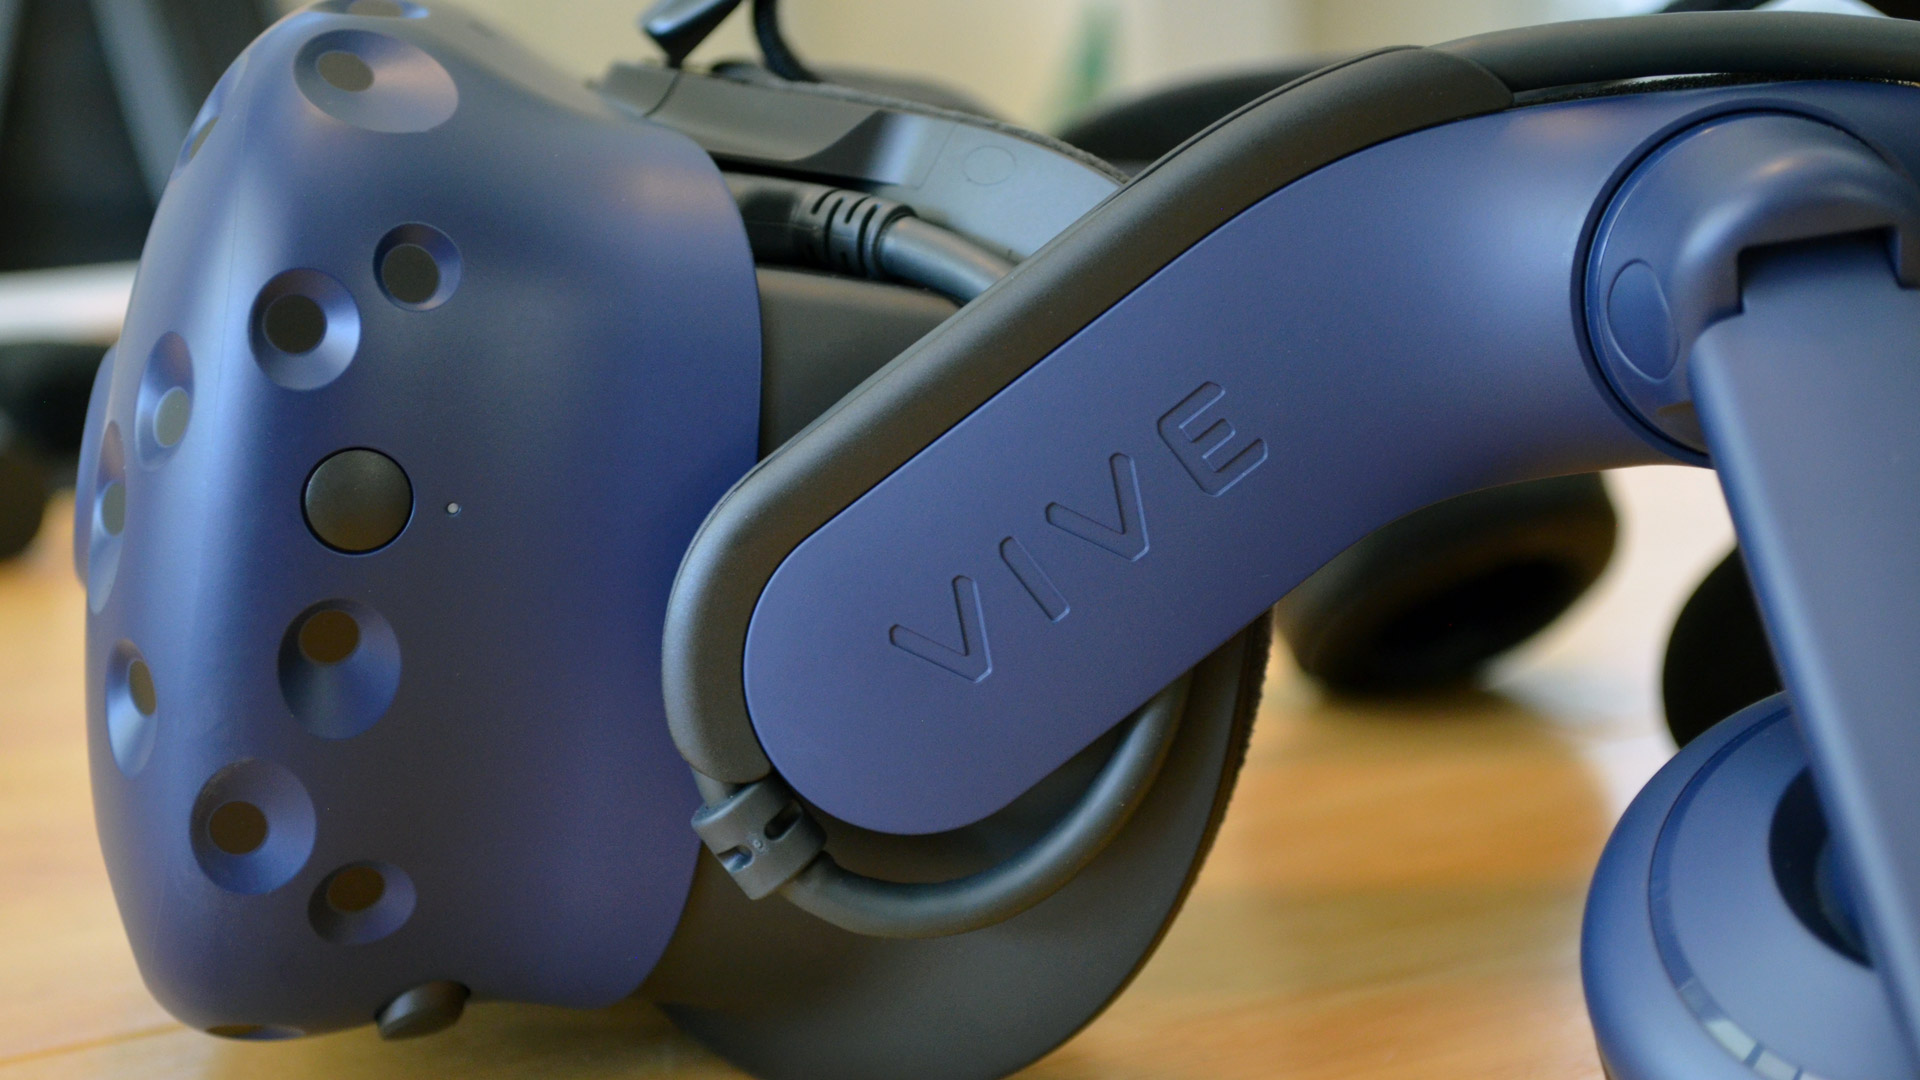 HTC Vive Pro Review: Improvements Overshadowed By a Steep Price